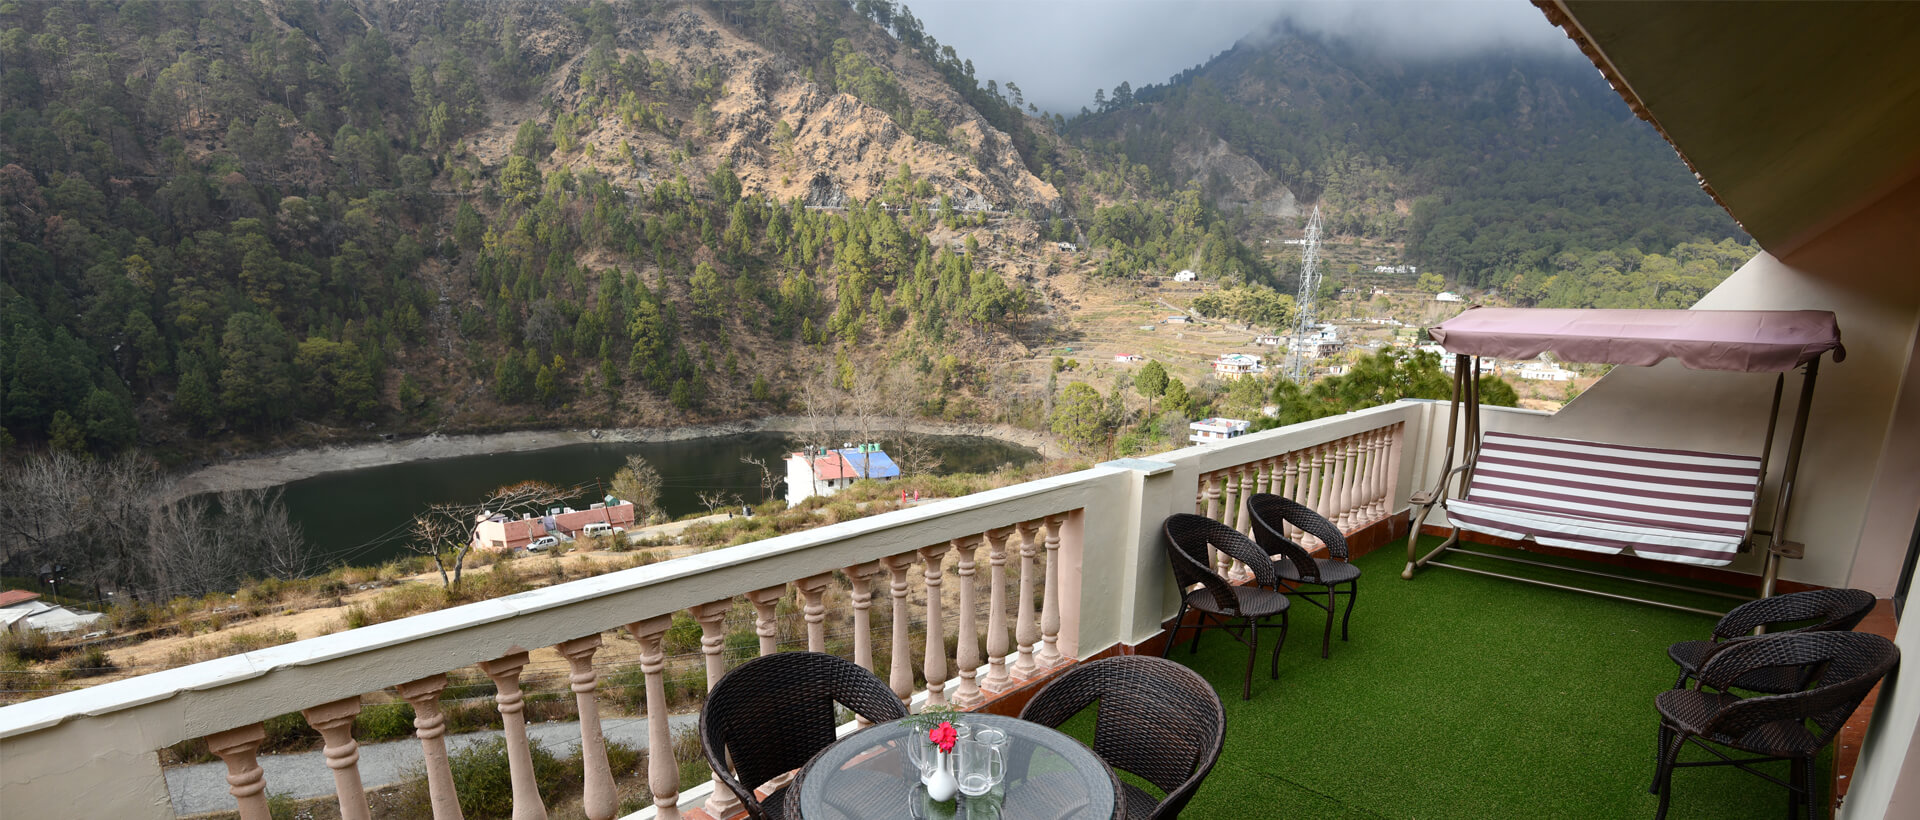 enjoy Moutains and greenery of nainital from dynasty hotel sitting area